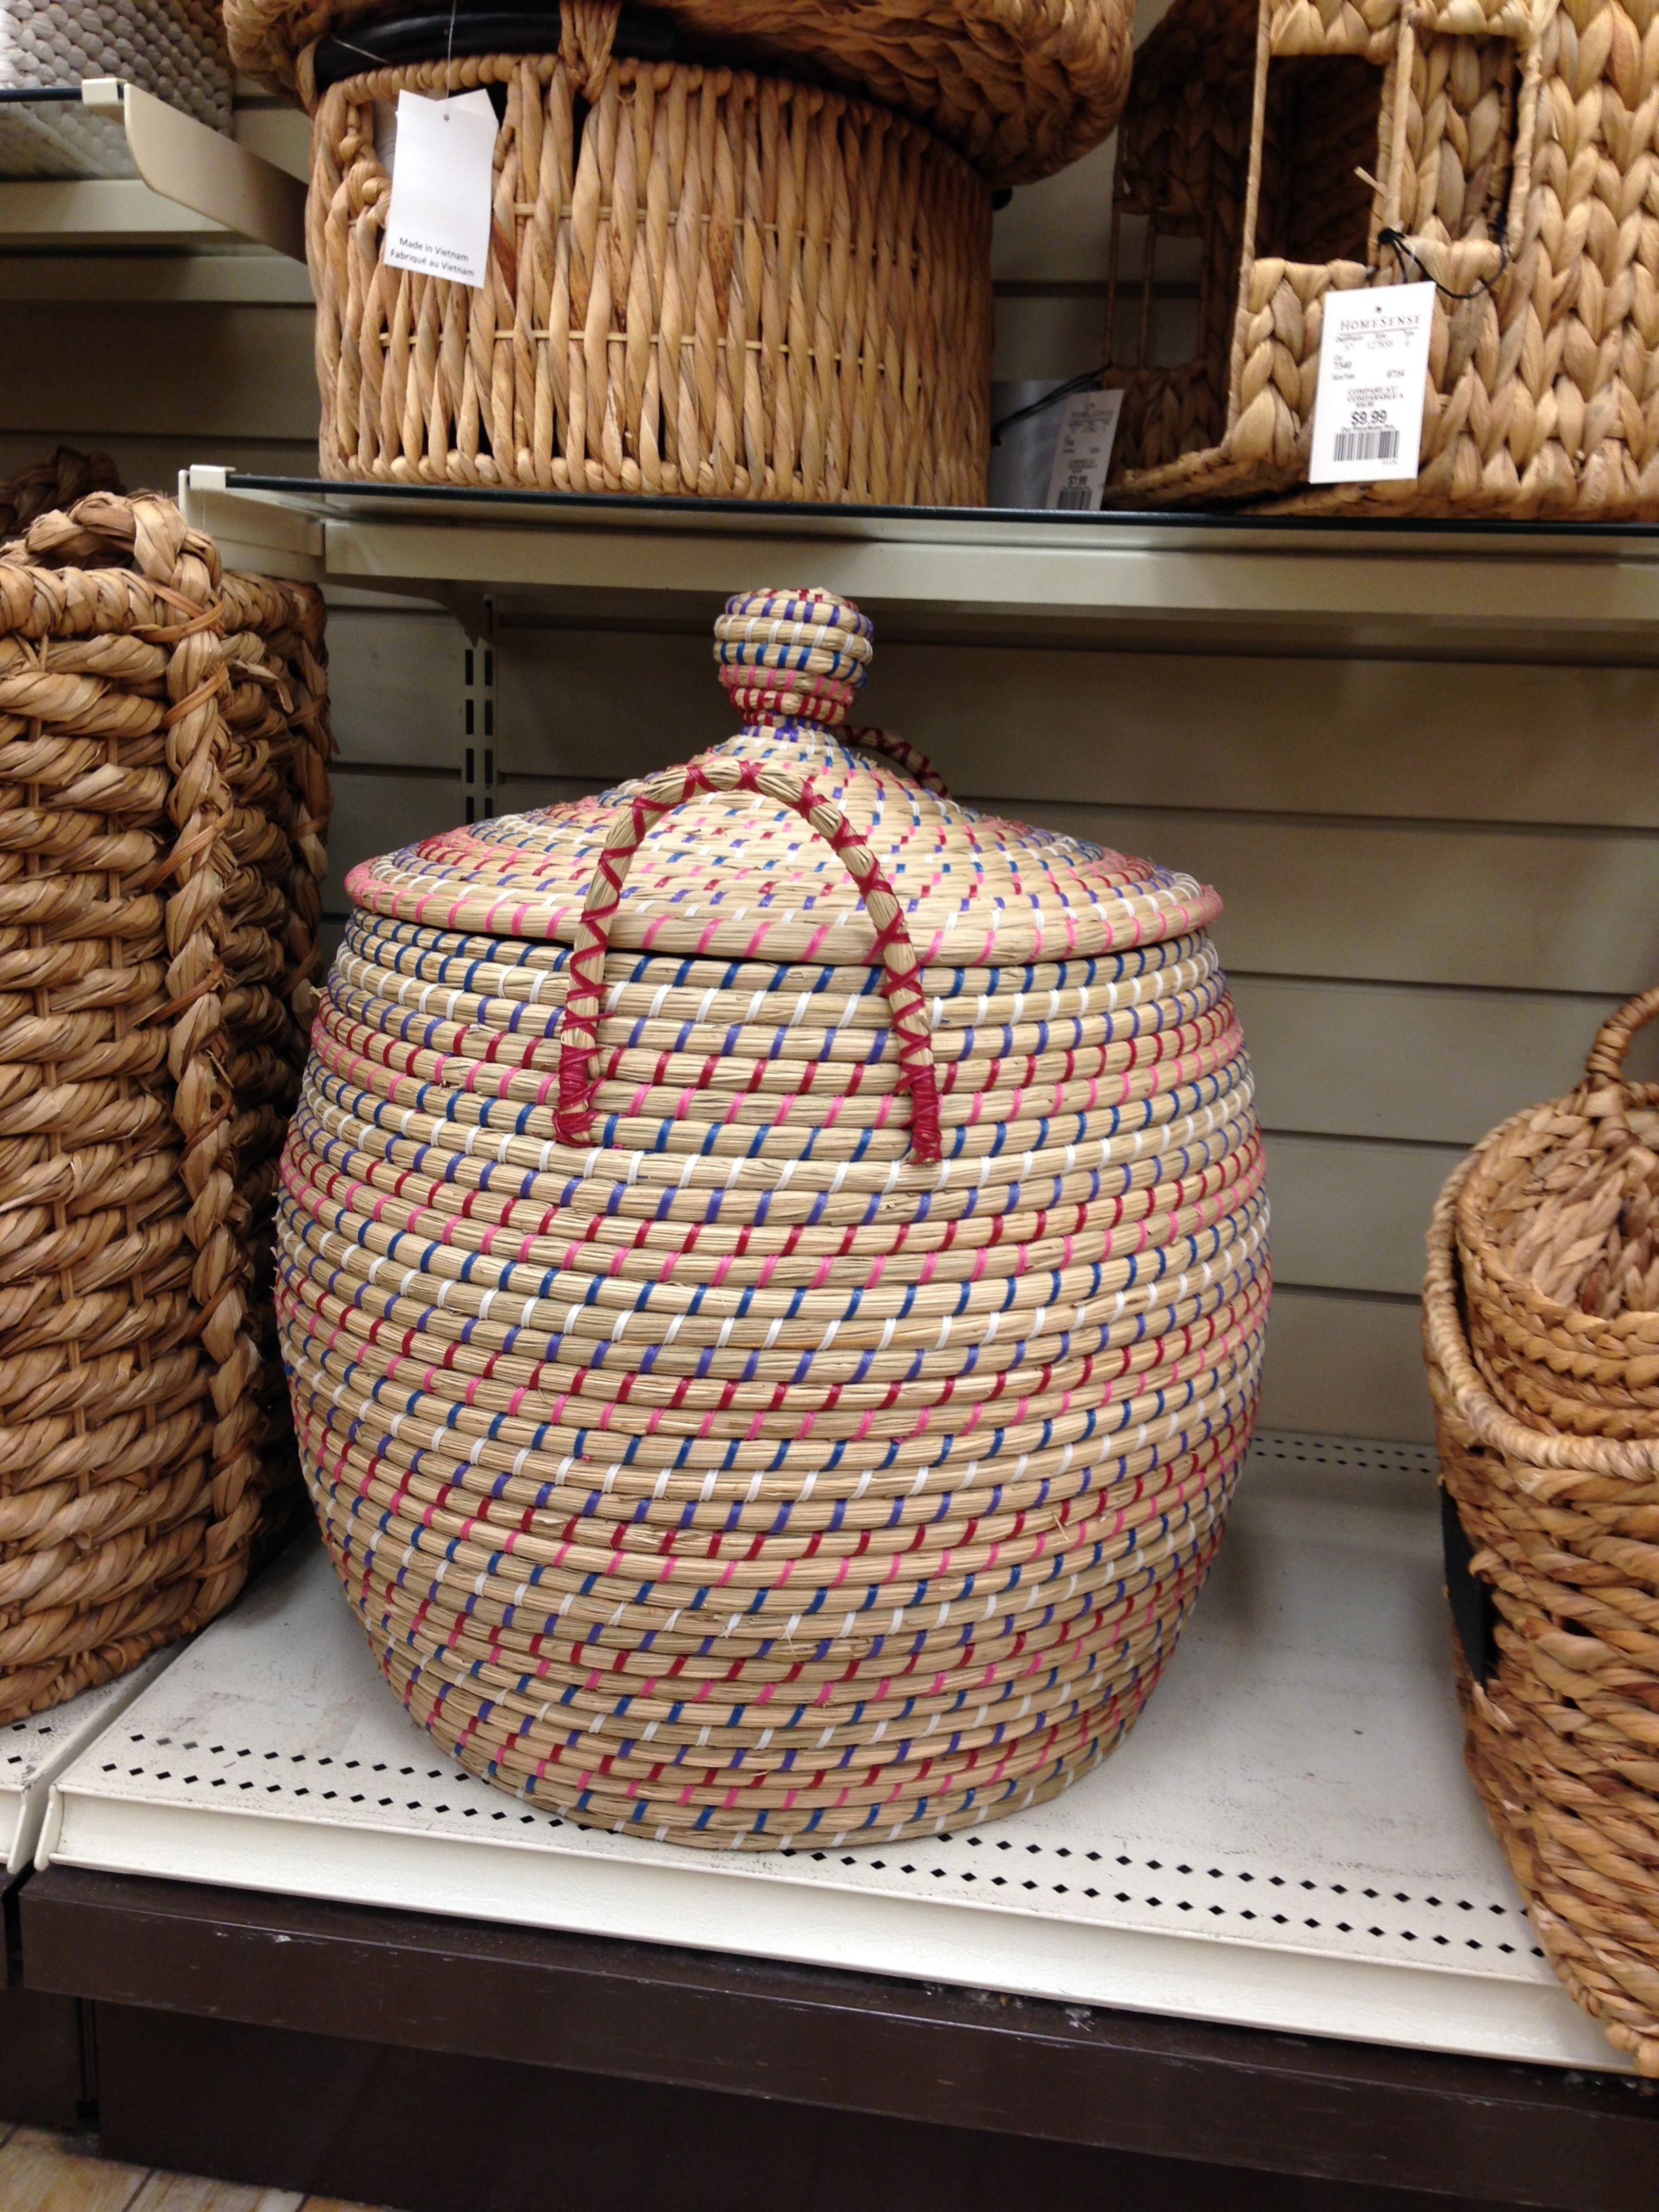 Oversized Woven Baskets   Spotted By Marie Eve Best At HomeSense |  Homesense.ca | #basket #storage #homeorganization